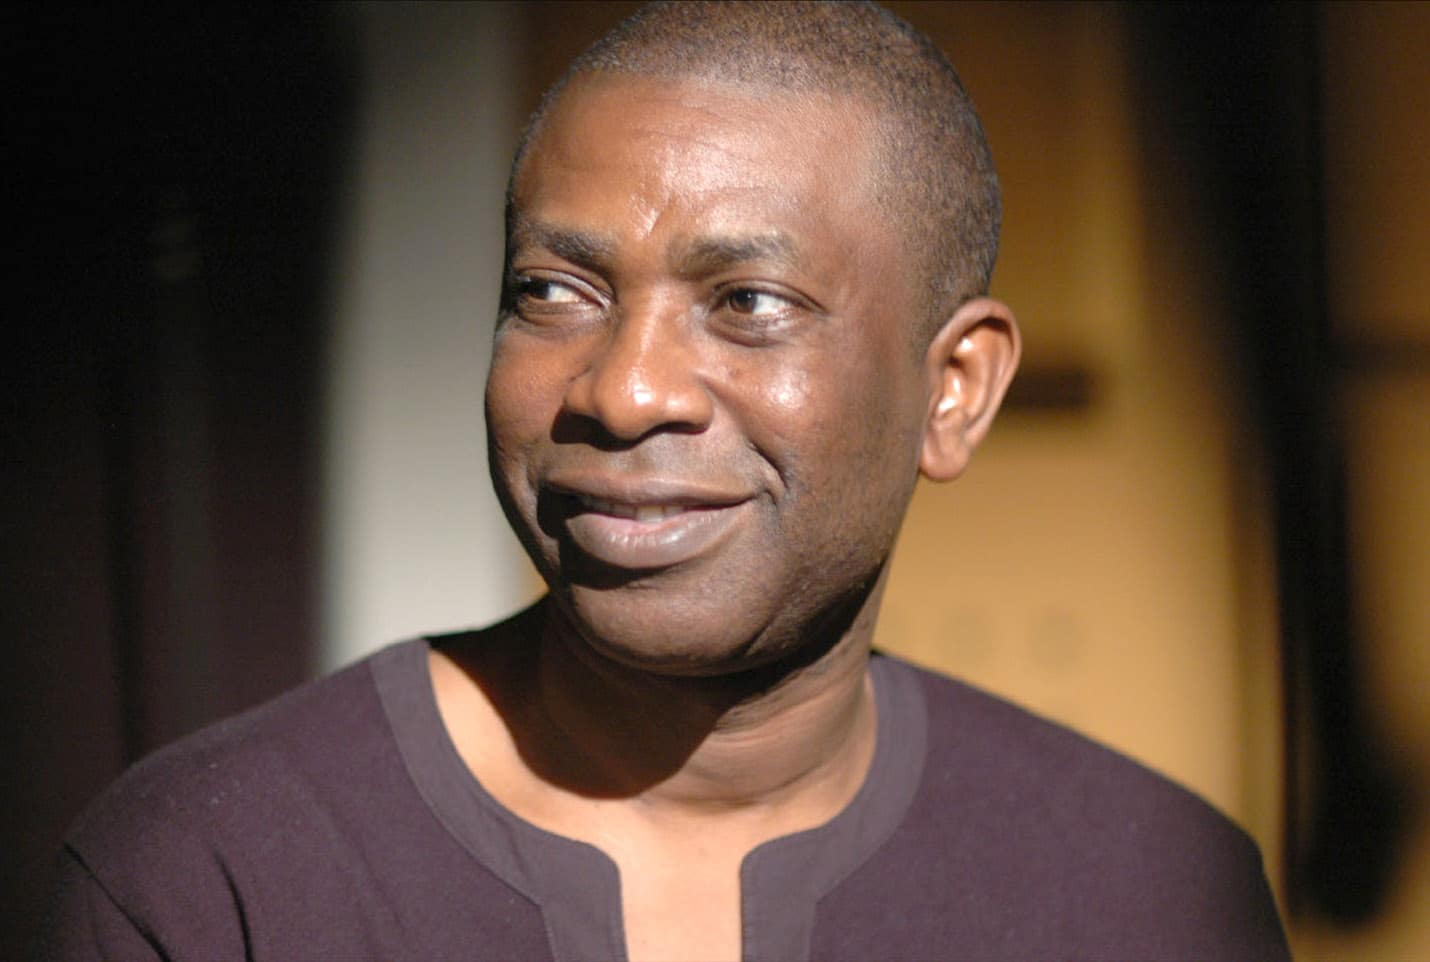 Youssou N'Dour: A song for peace in Central African Republic